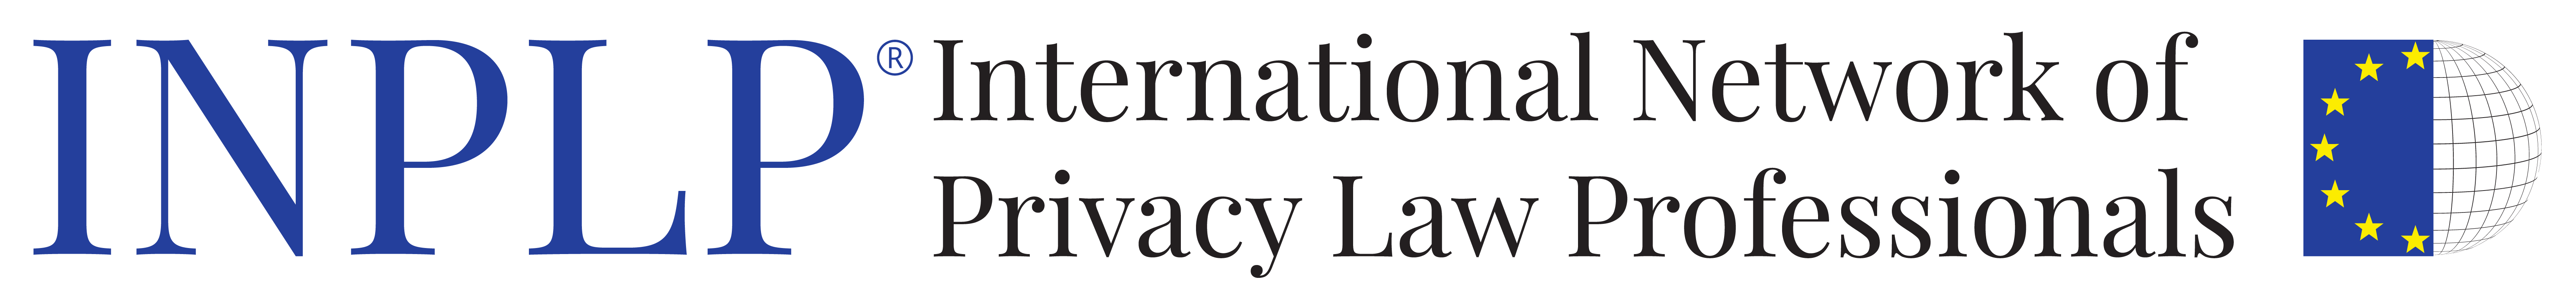 International Network of Privacy Law Professionals